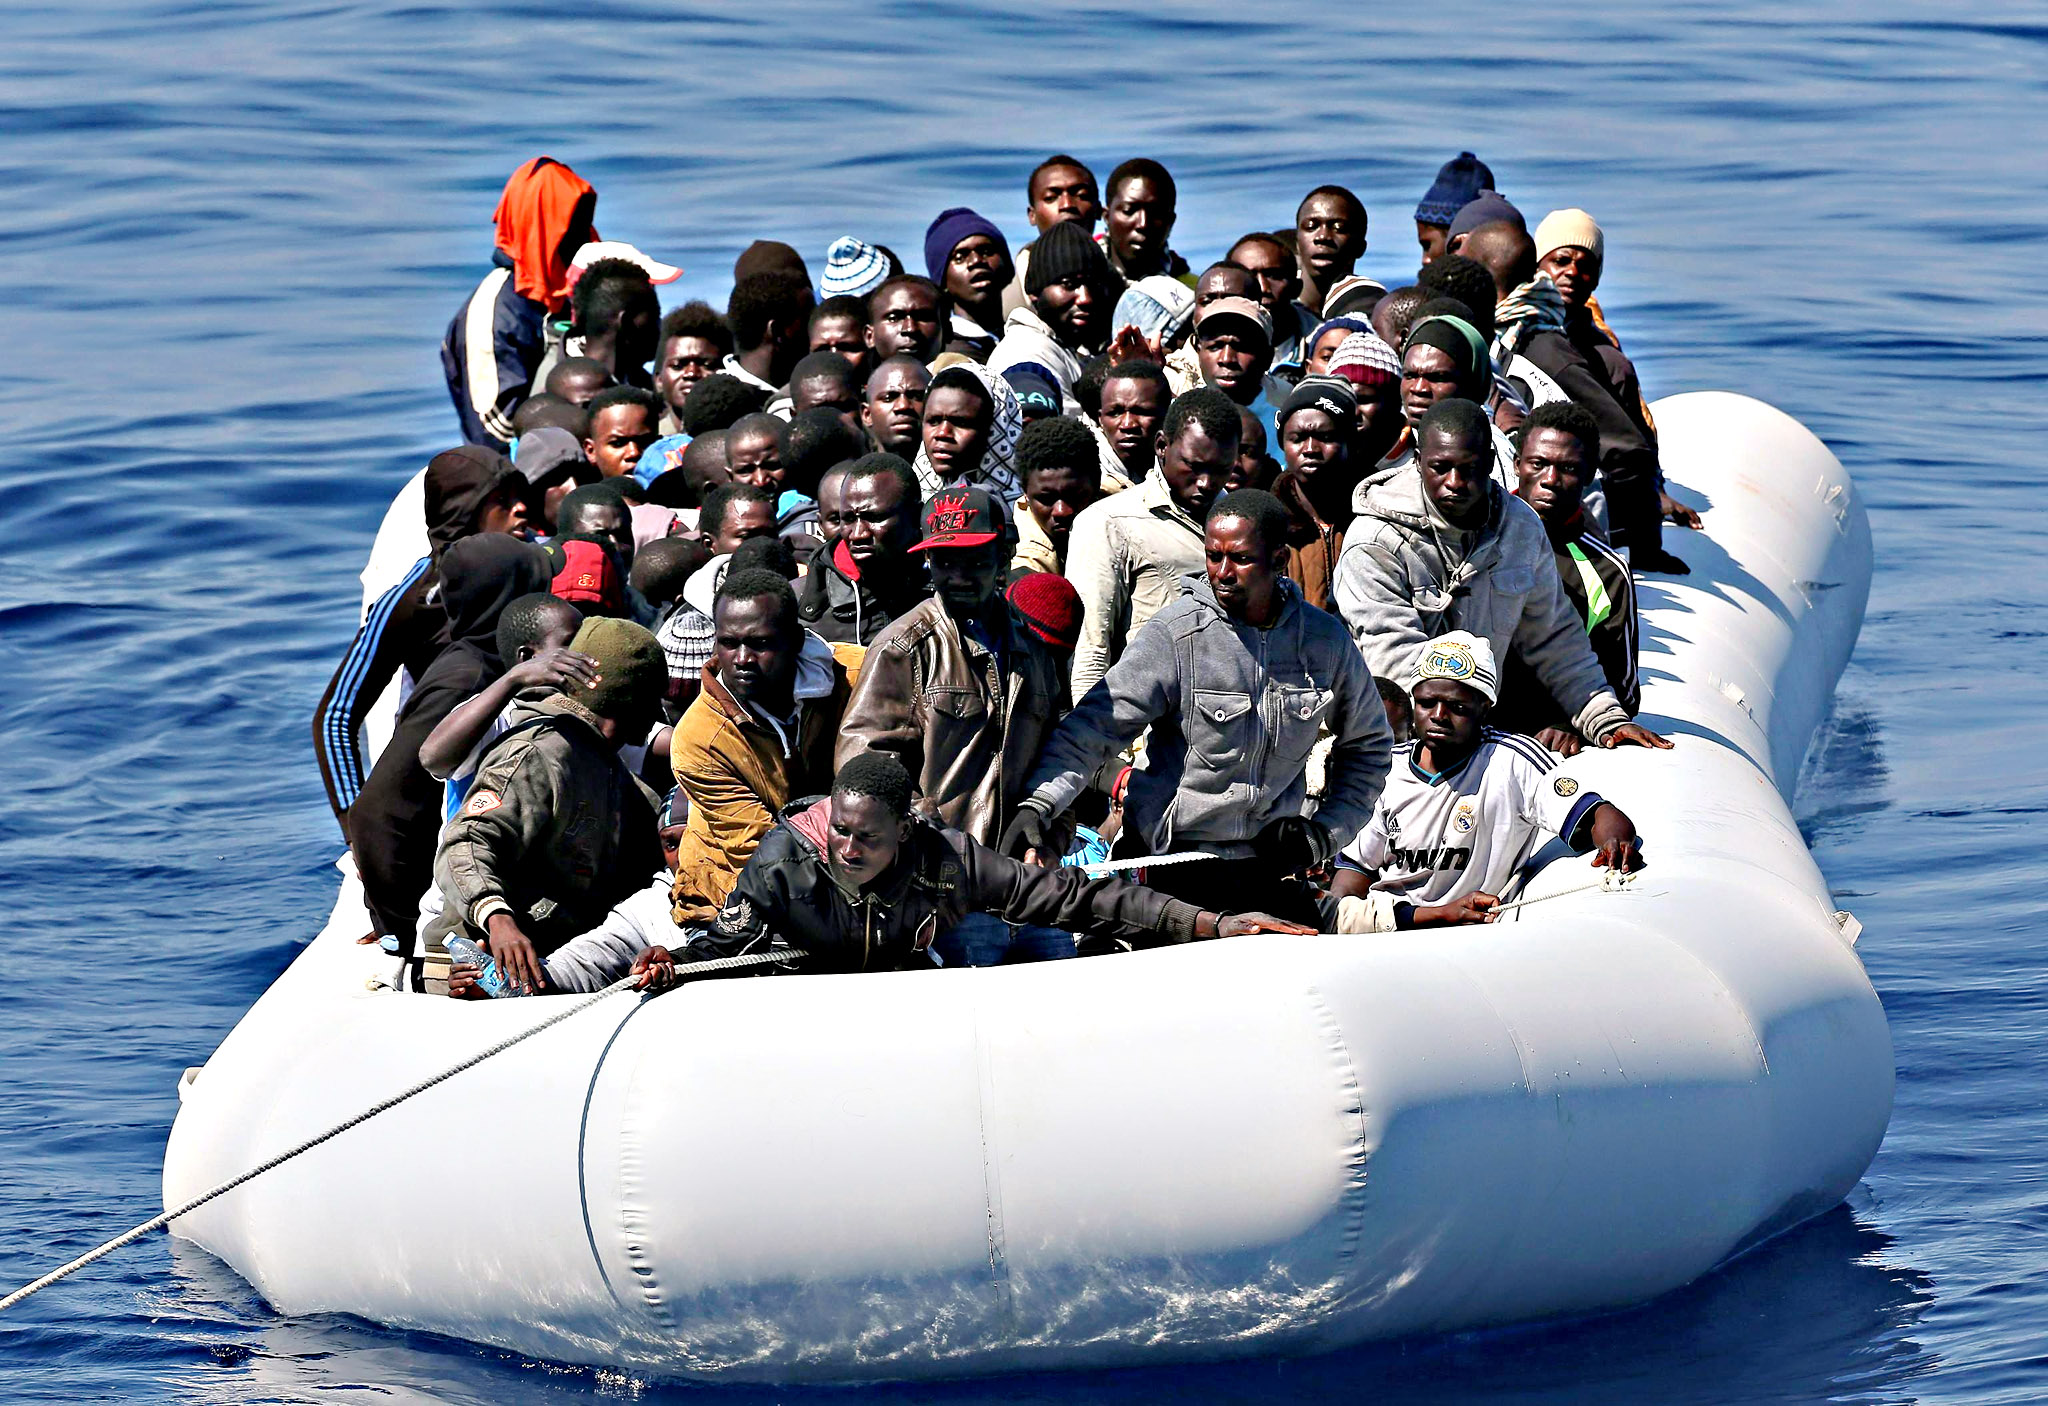 Over 200 illegal migrants, before they are shipped to the Italian mainland after being rescued by Italian Guardia di Finanza boat 'Denaro' in the Mediterranean Sea